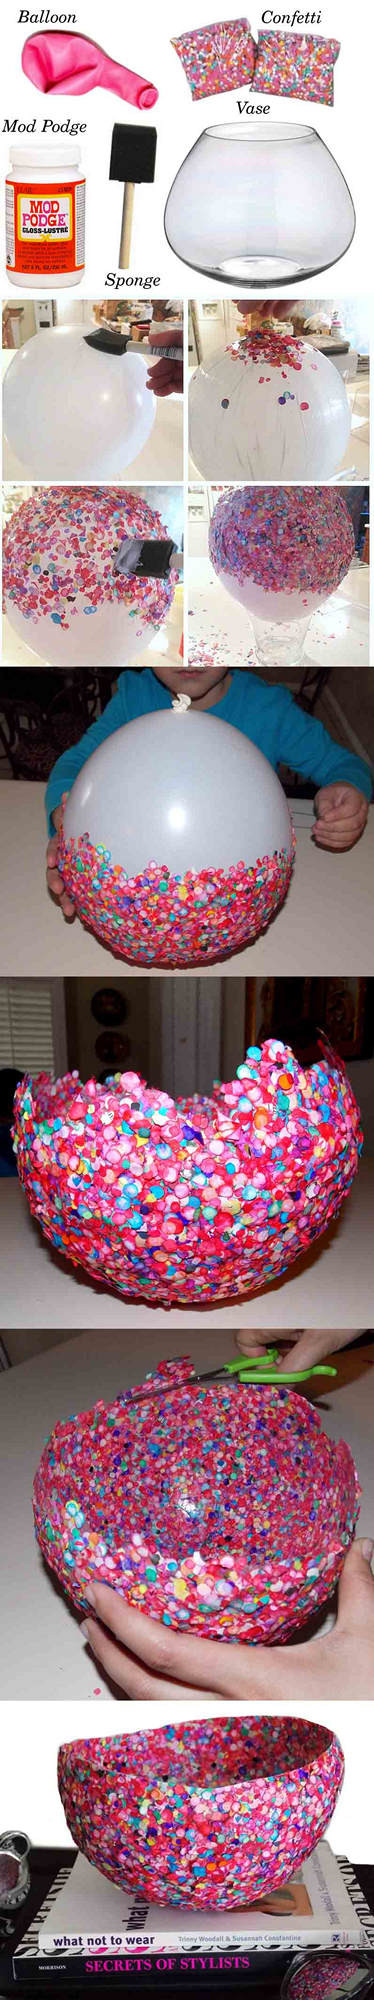 Best ideas about Simple Crafts Ideas For Adults . Save or Pin 11 Simple DIY Craft Ideas for Adults Snappy Now.